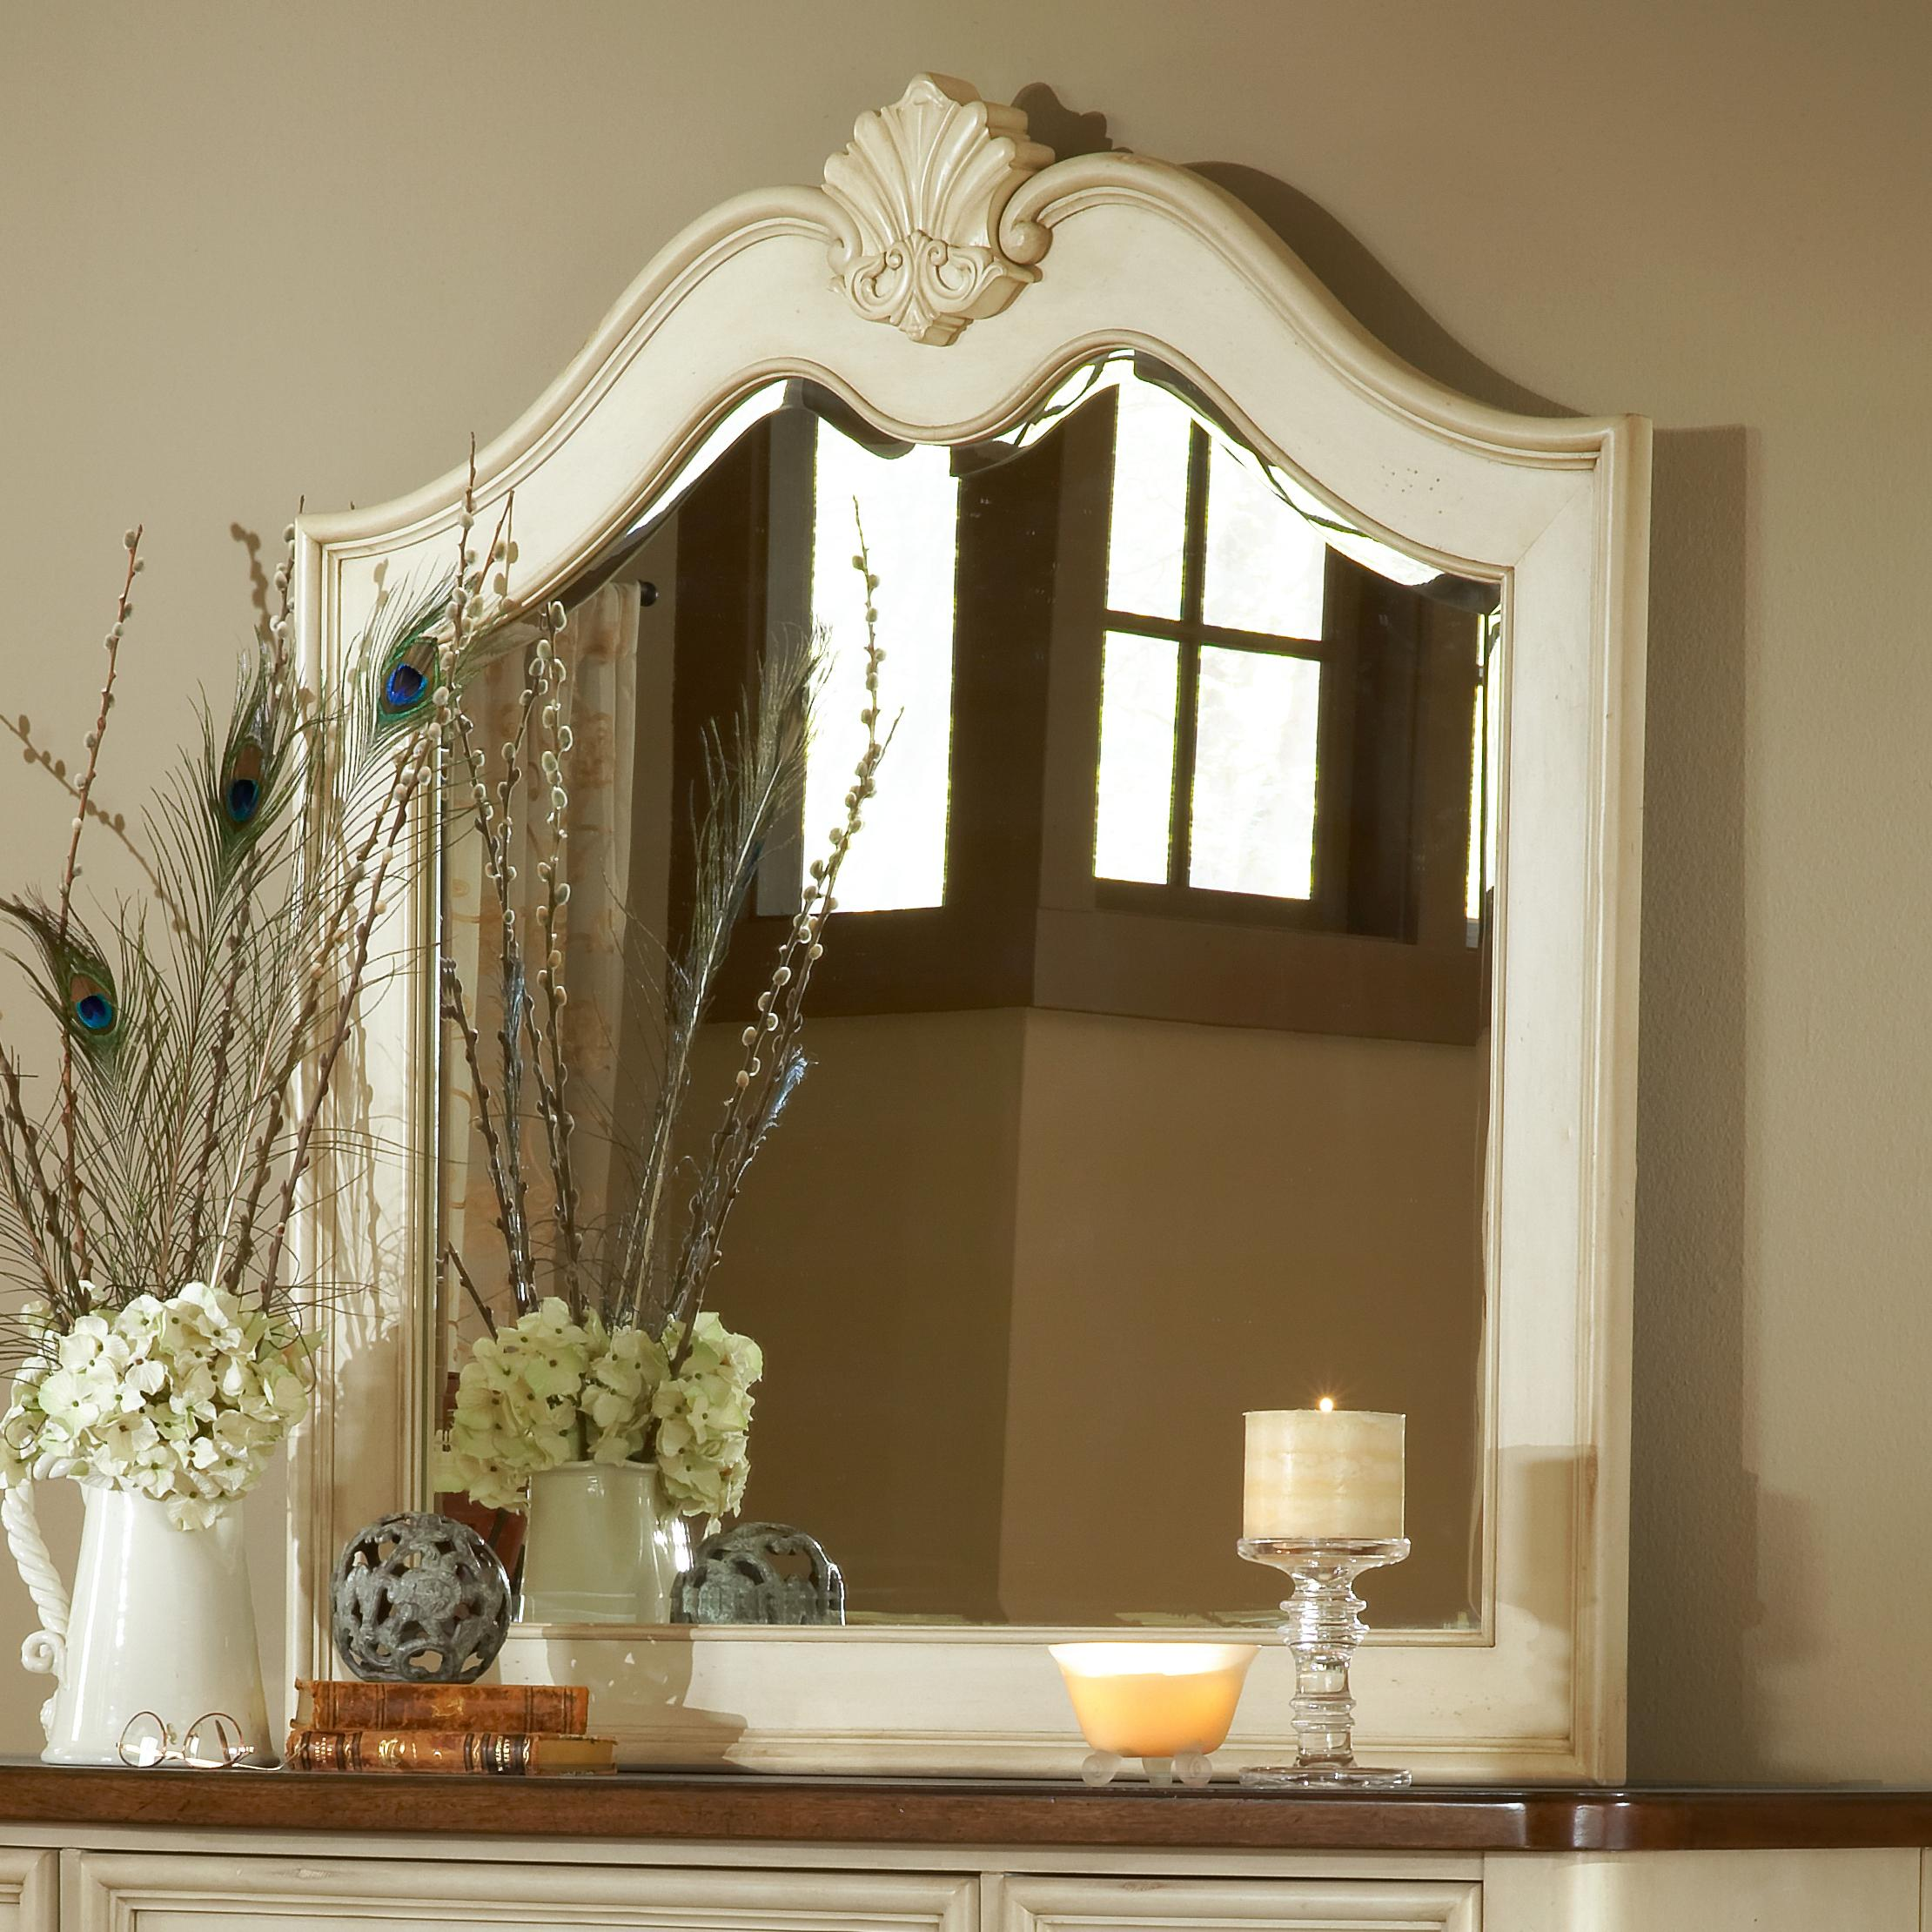 American Woodcrafters Chateau Landscape Mirror - Item Number: 3501-040